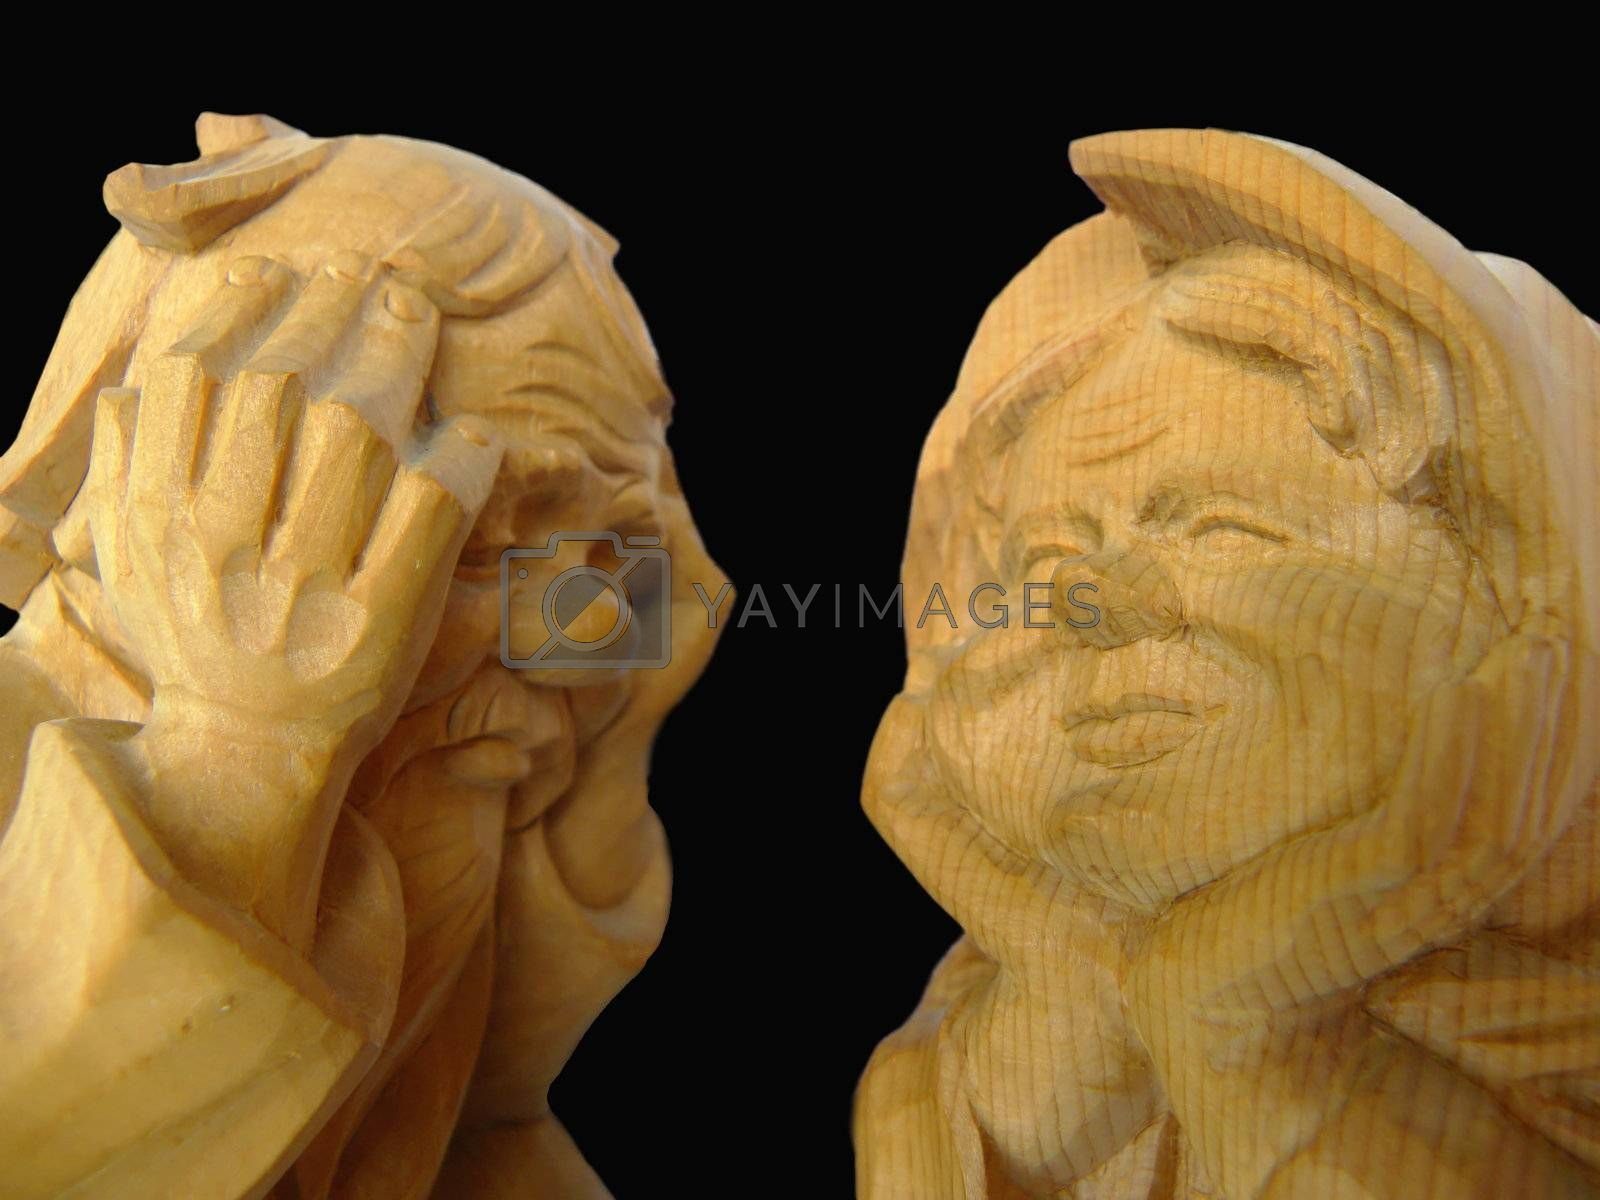 two wooden statues of elderly